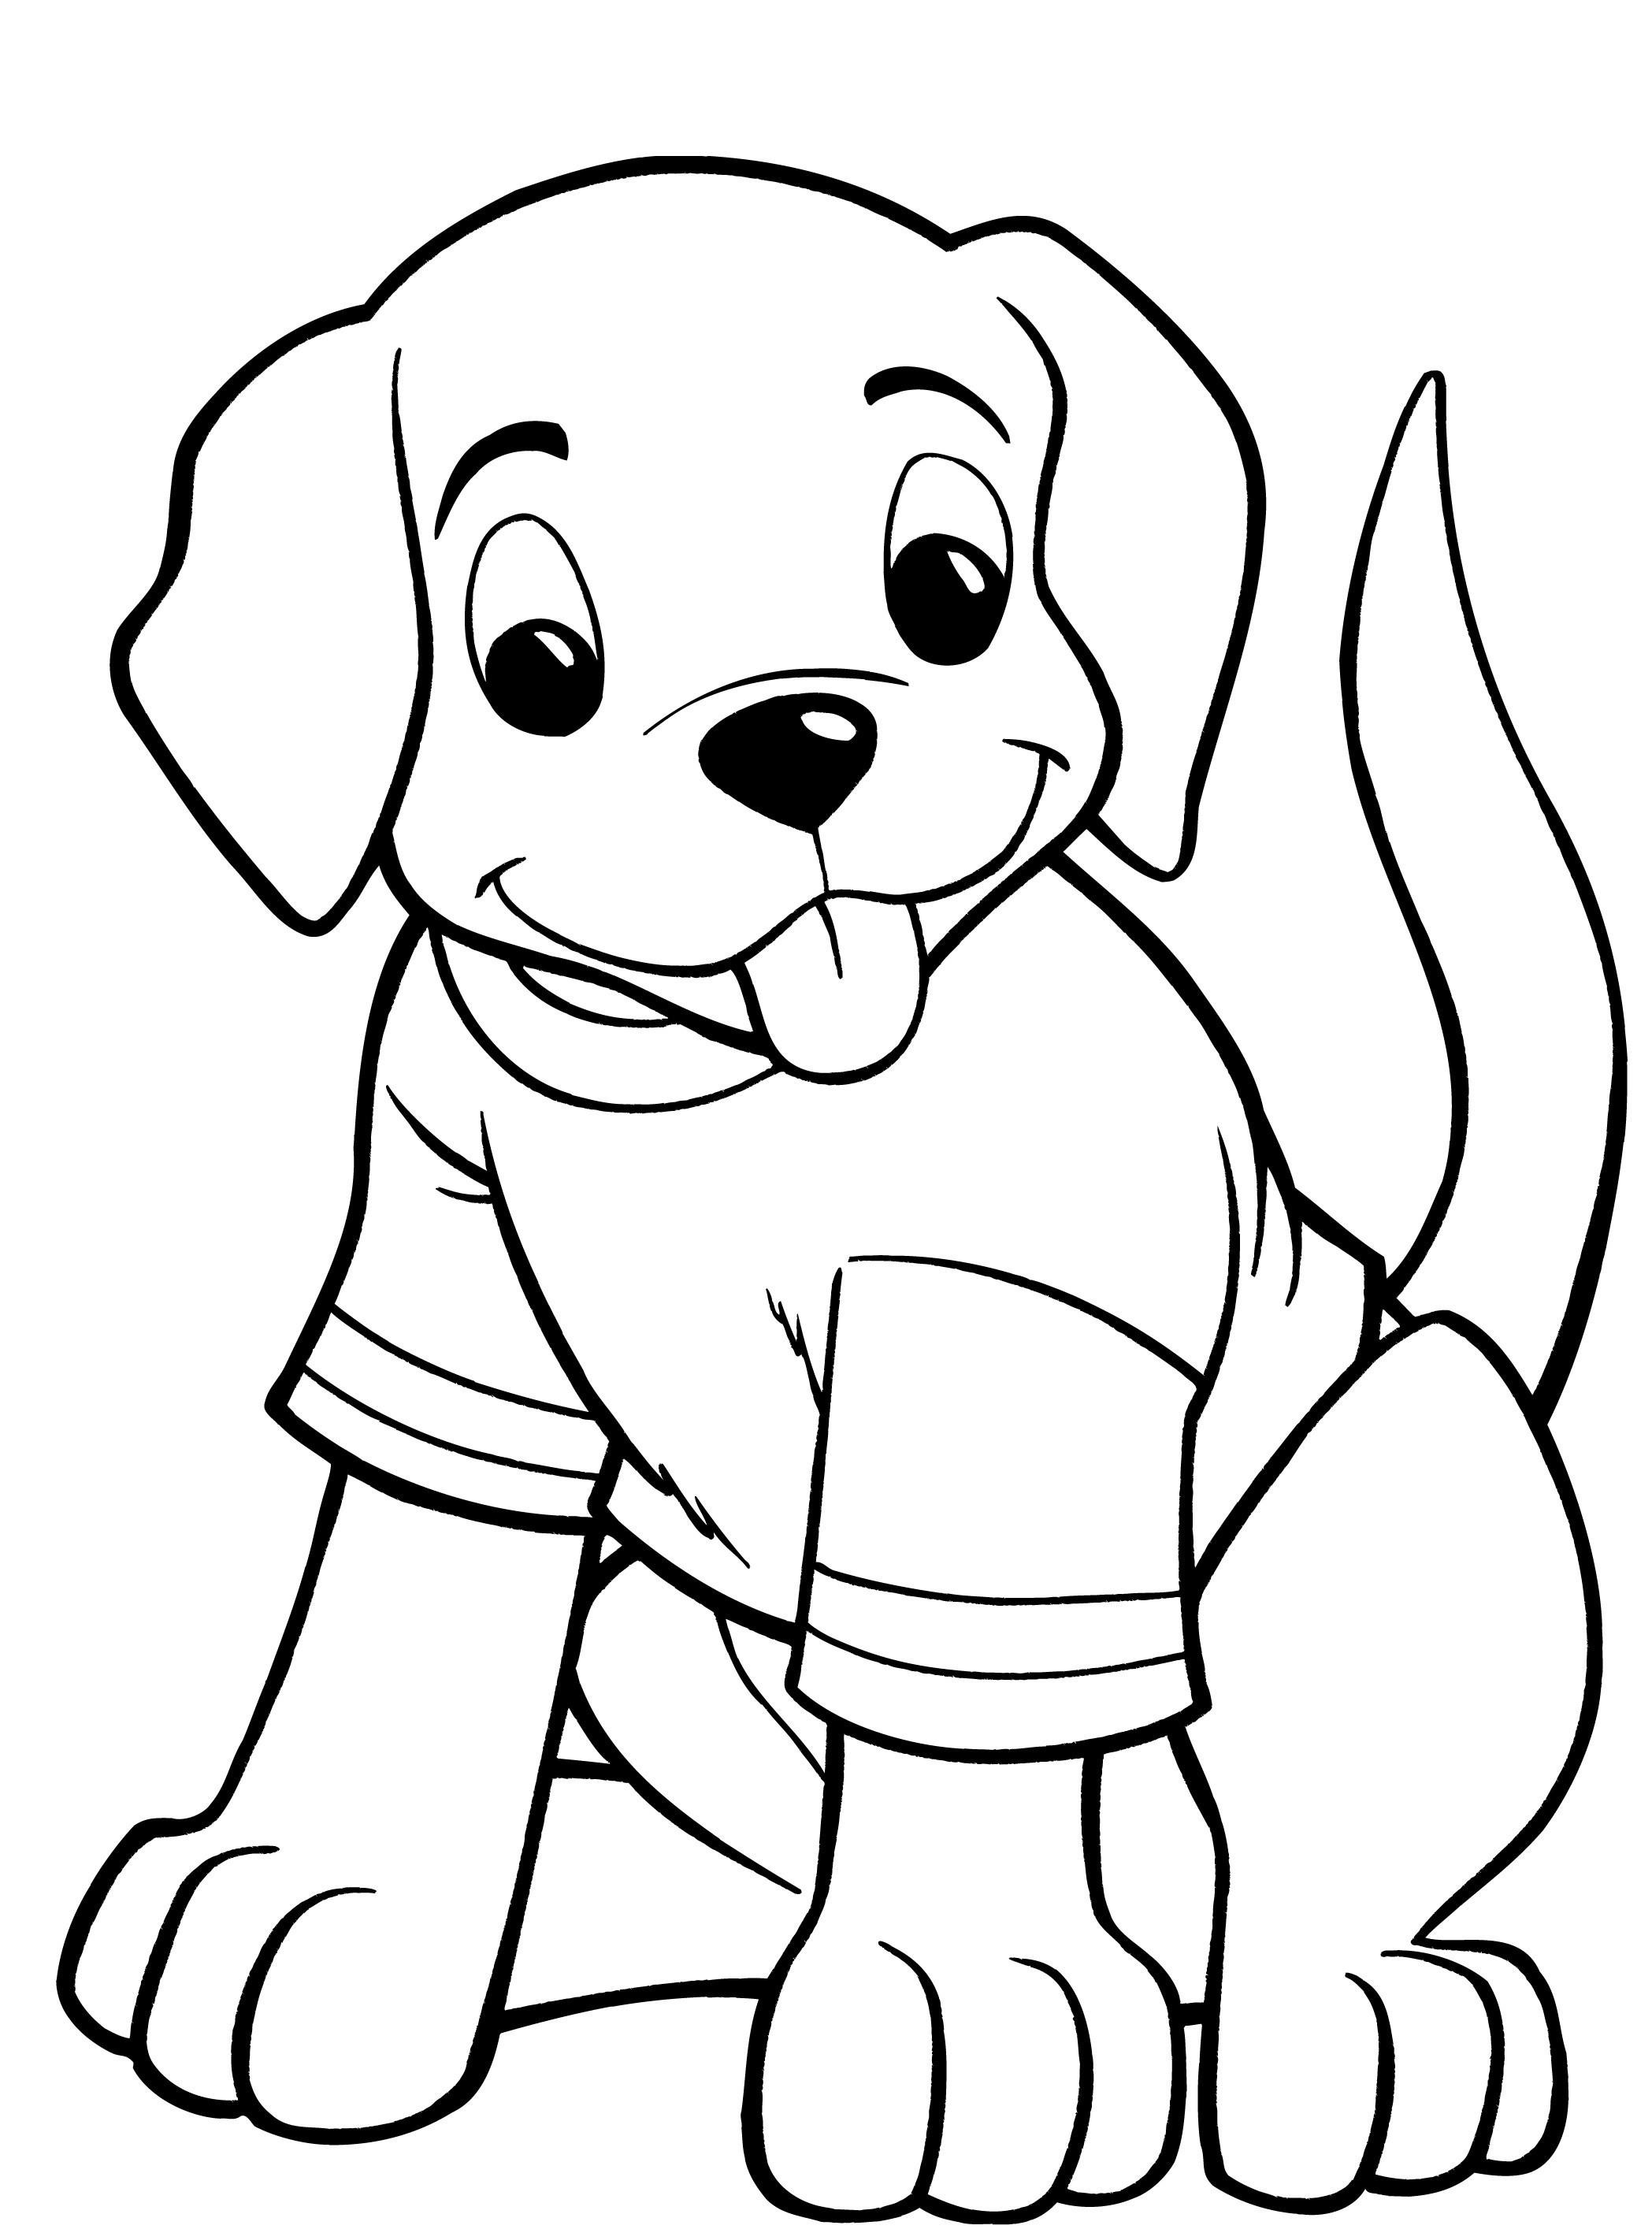 printable cute puppy coloring pages cute puppies coloring pages printable coloring printable pages cute puppy